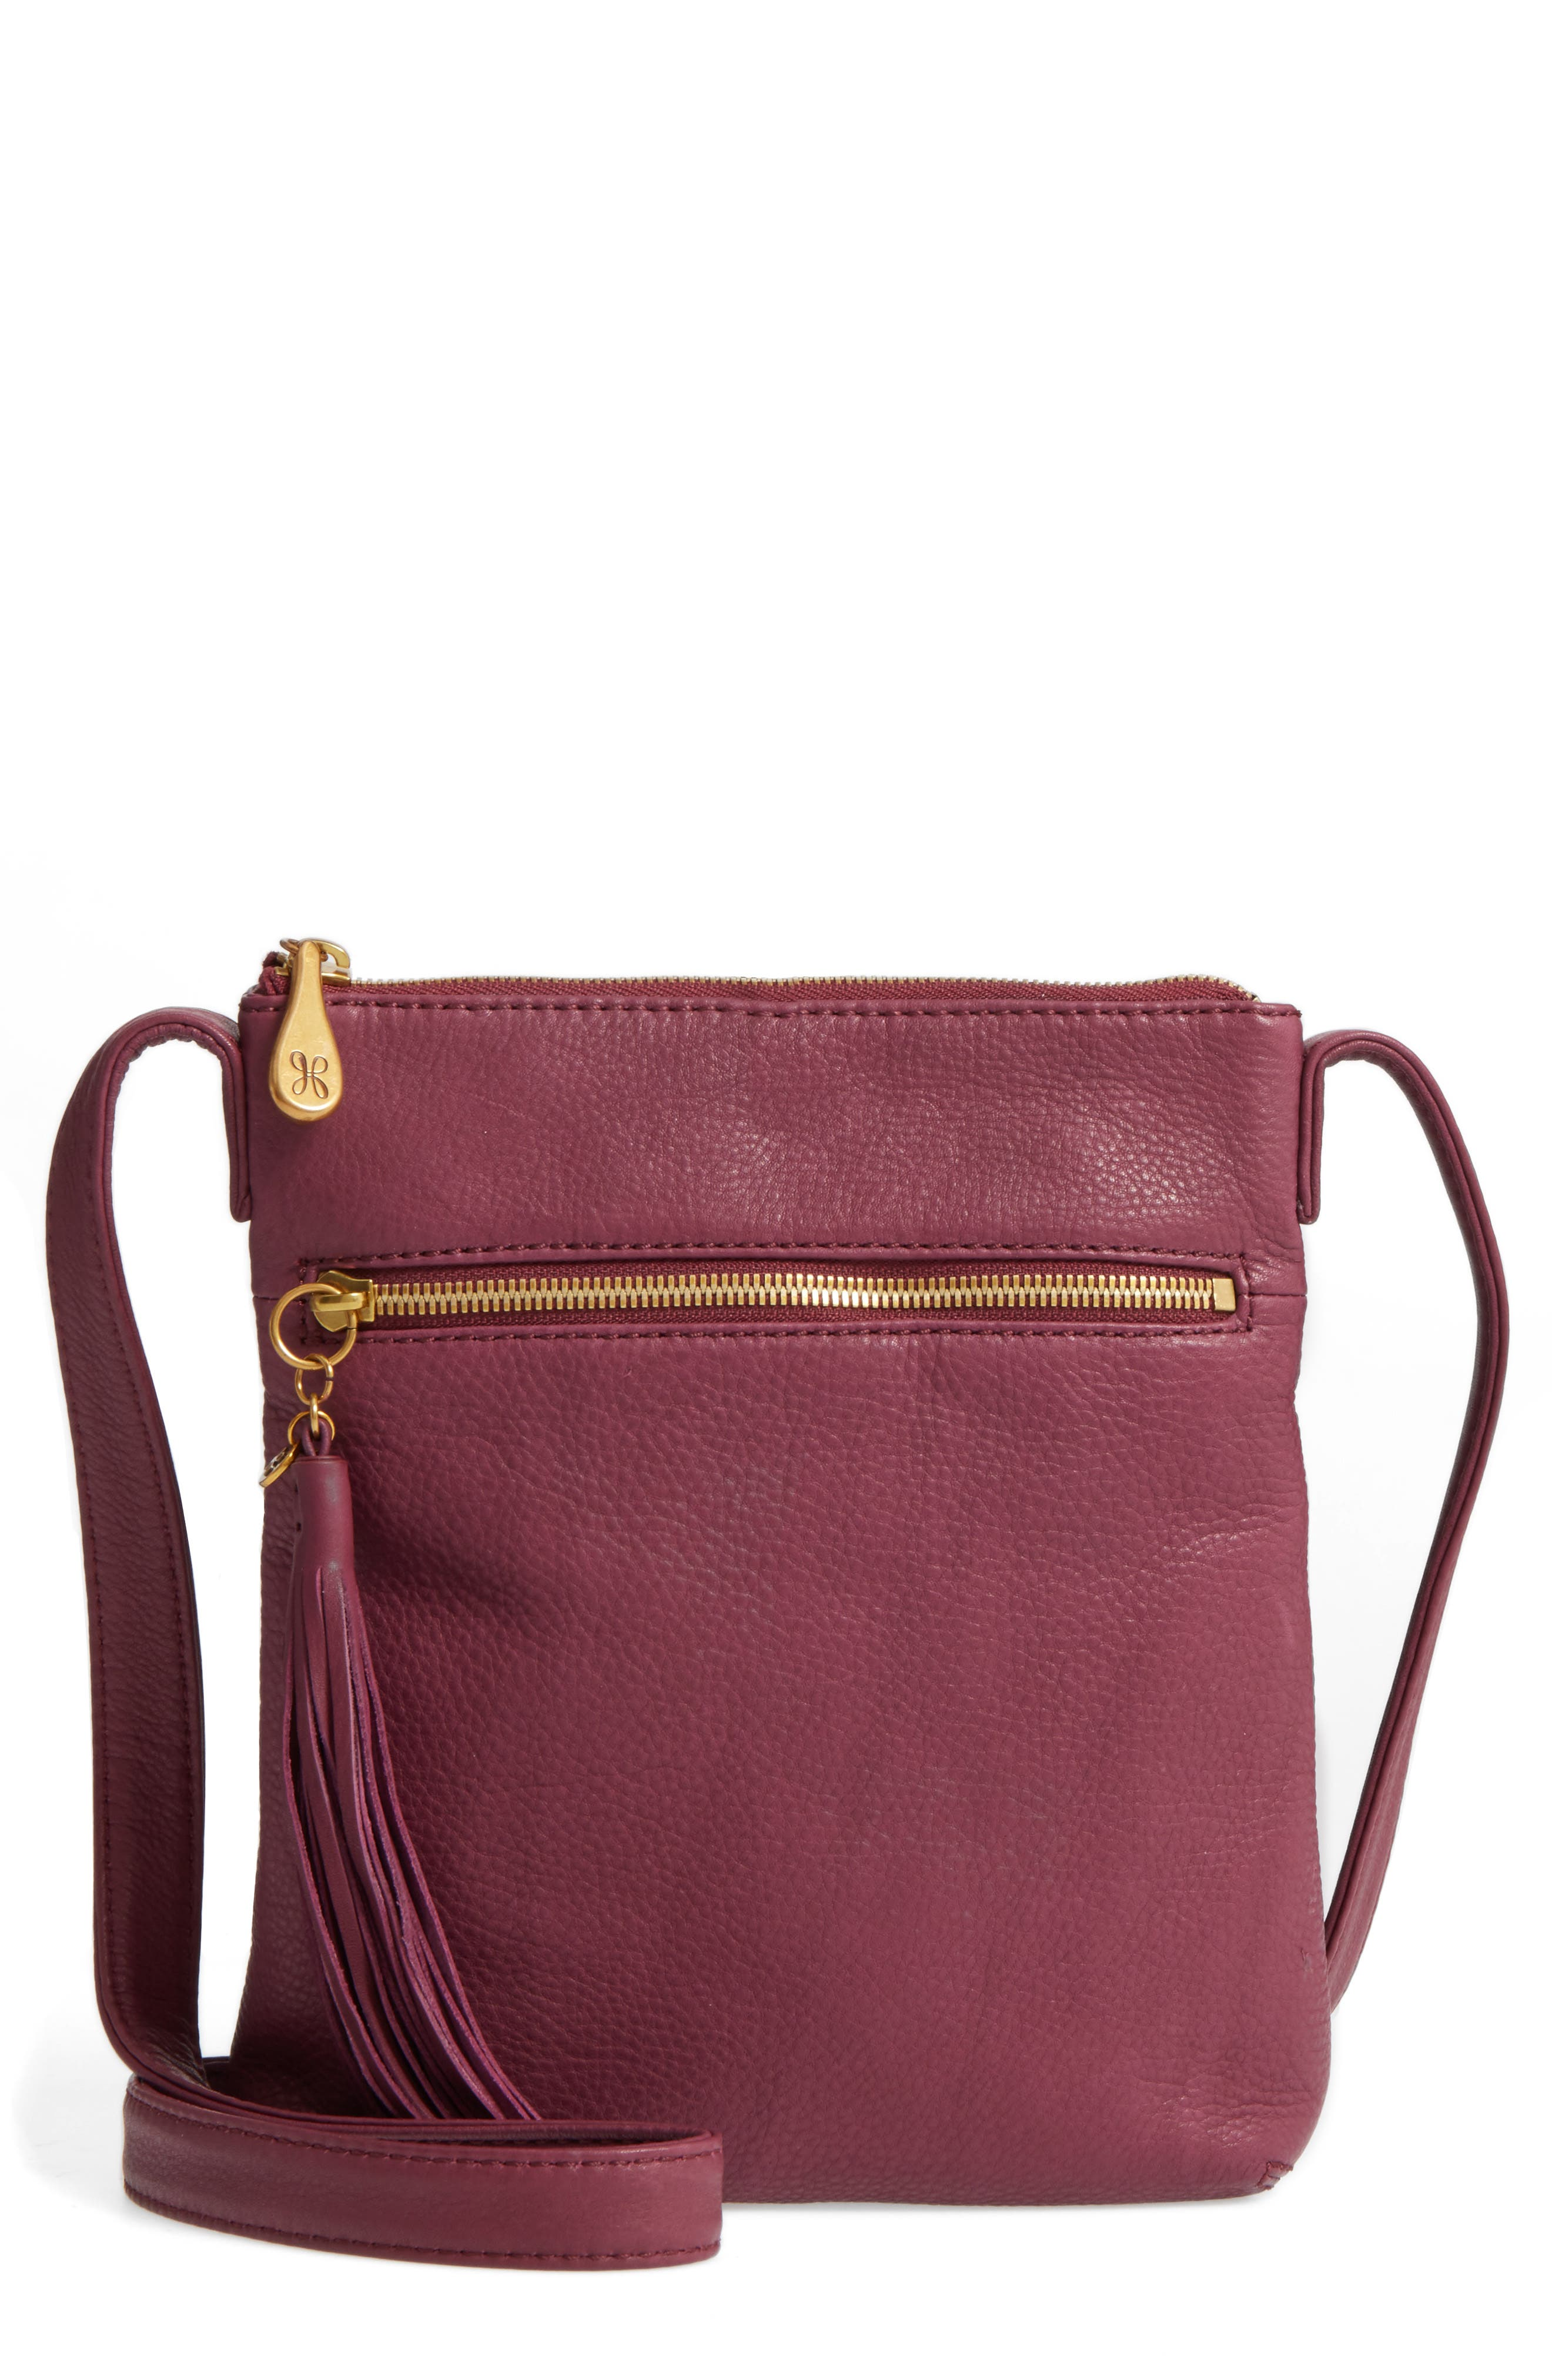 Hobo 'Sarah' Leather Crossbody Bag